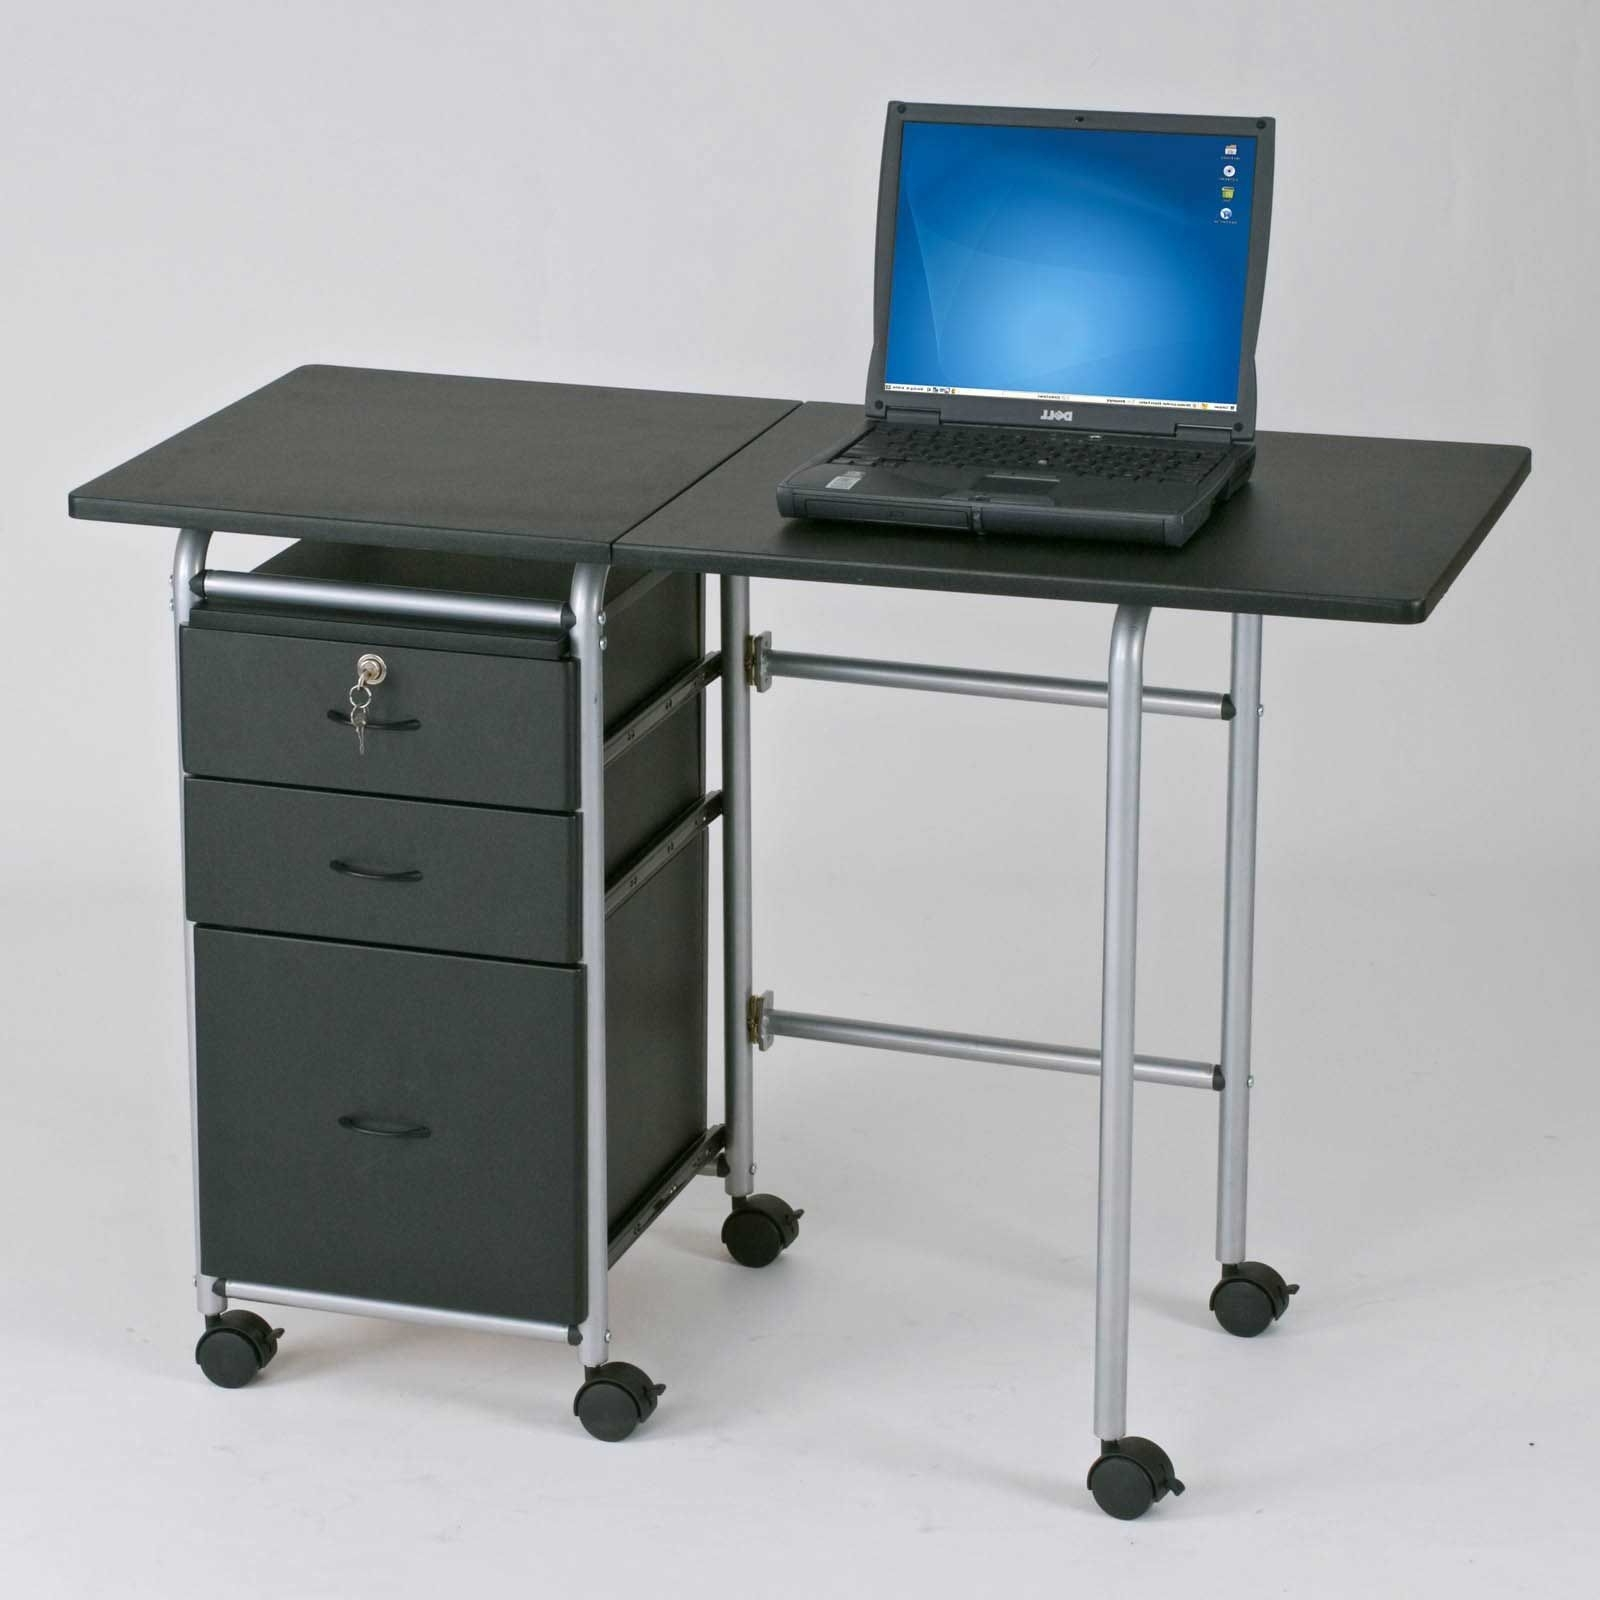 Computer Tables With Small Wheel (View 1 of 20)